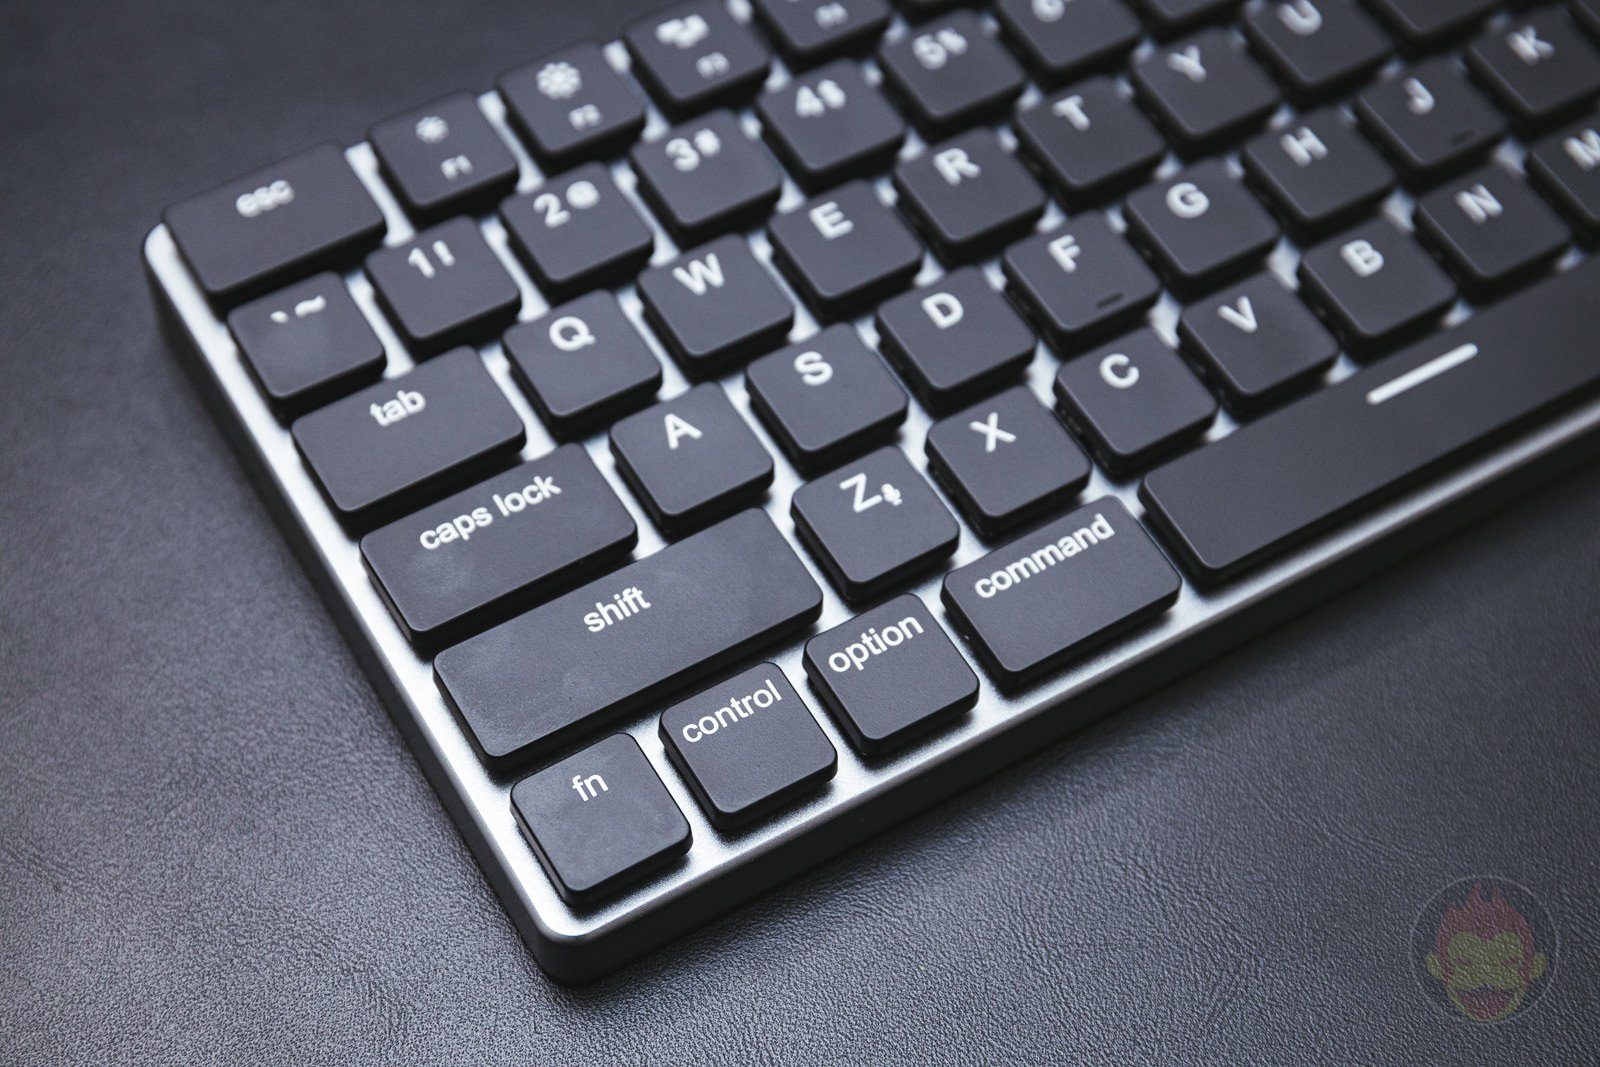 Vinpok Taptek Wireless Keyboard Review 2 07